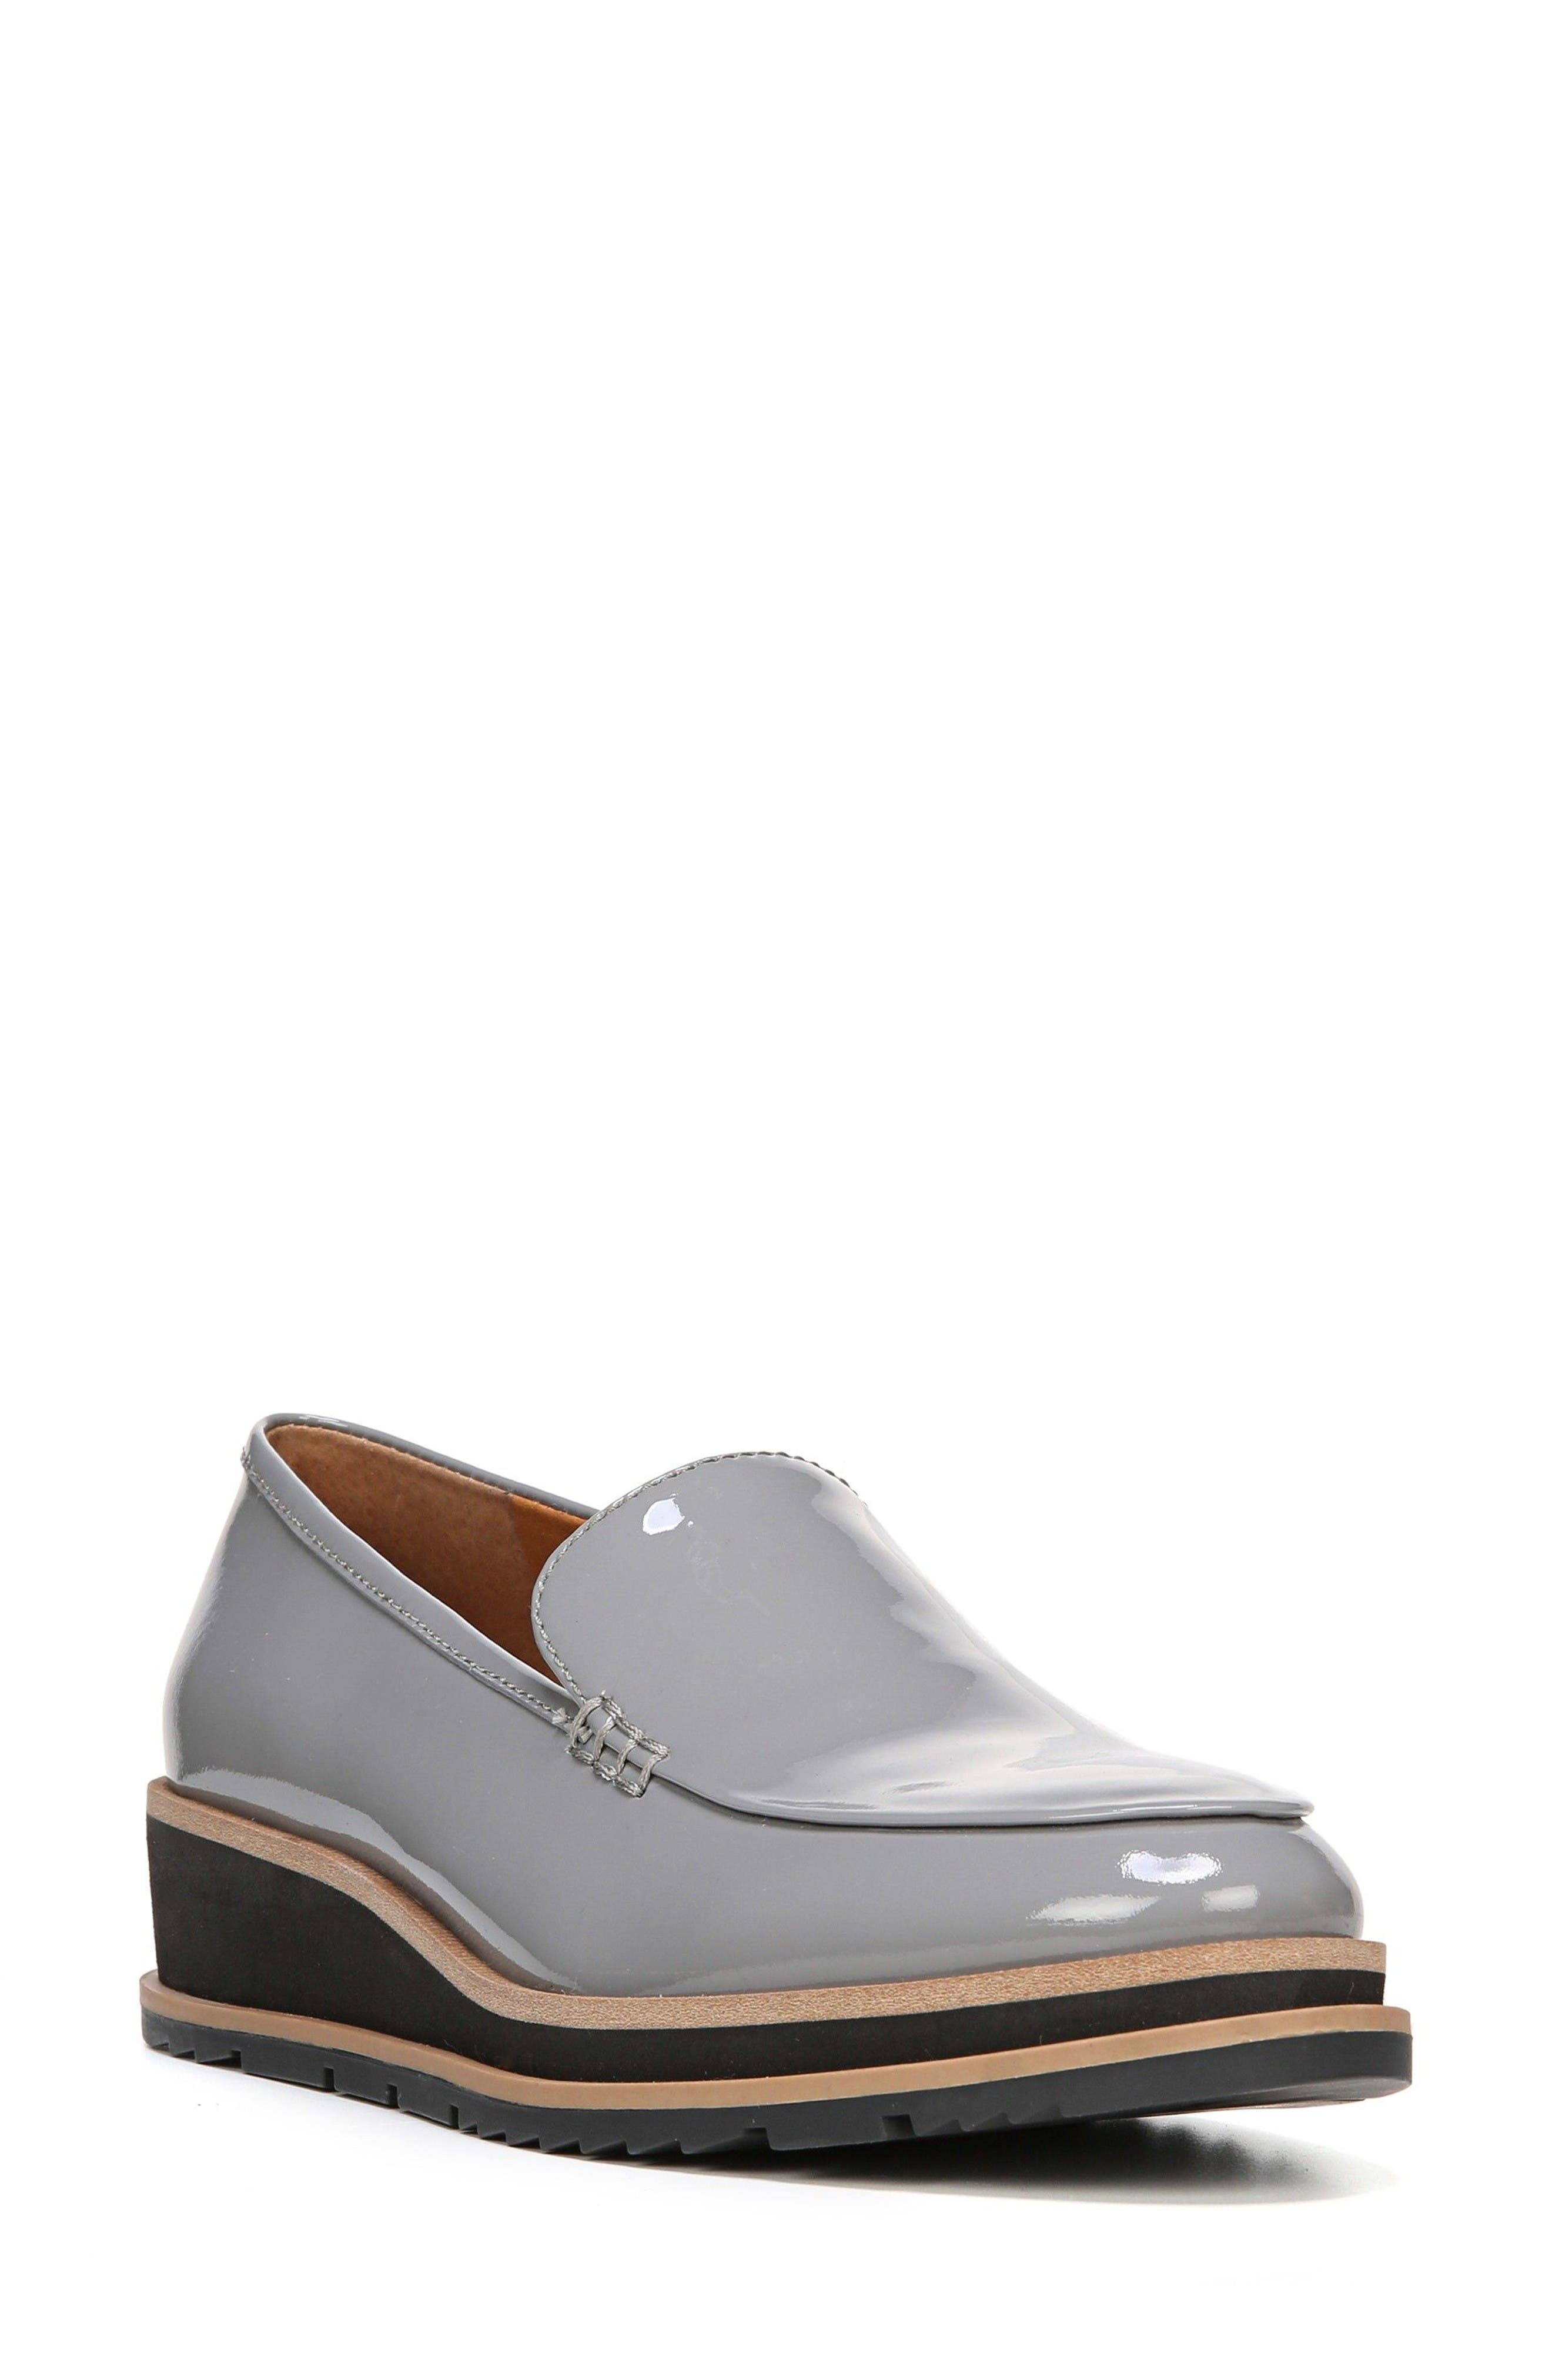 Alternate Image 1 Selected - SARTO by Franco Sarto Ayers Loafer Flat (Women)